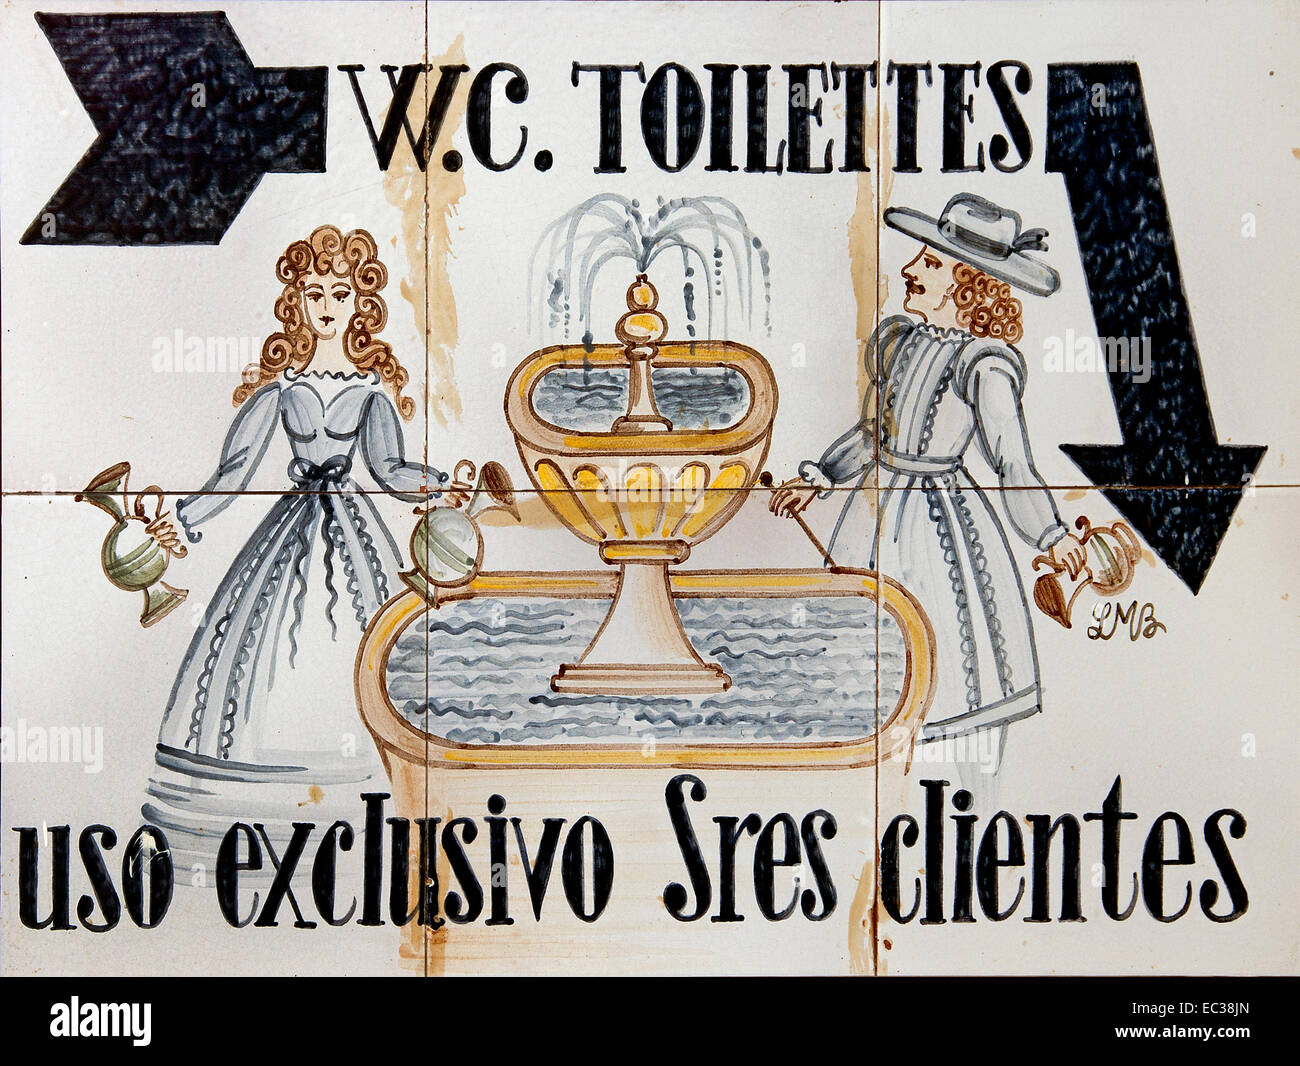 WC Toilet only for clients Sitges Spain Spanish - Stock Image